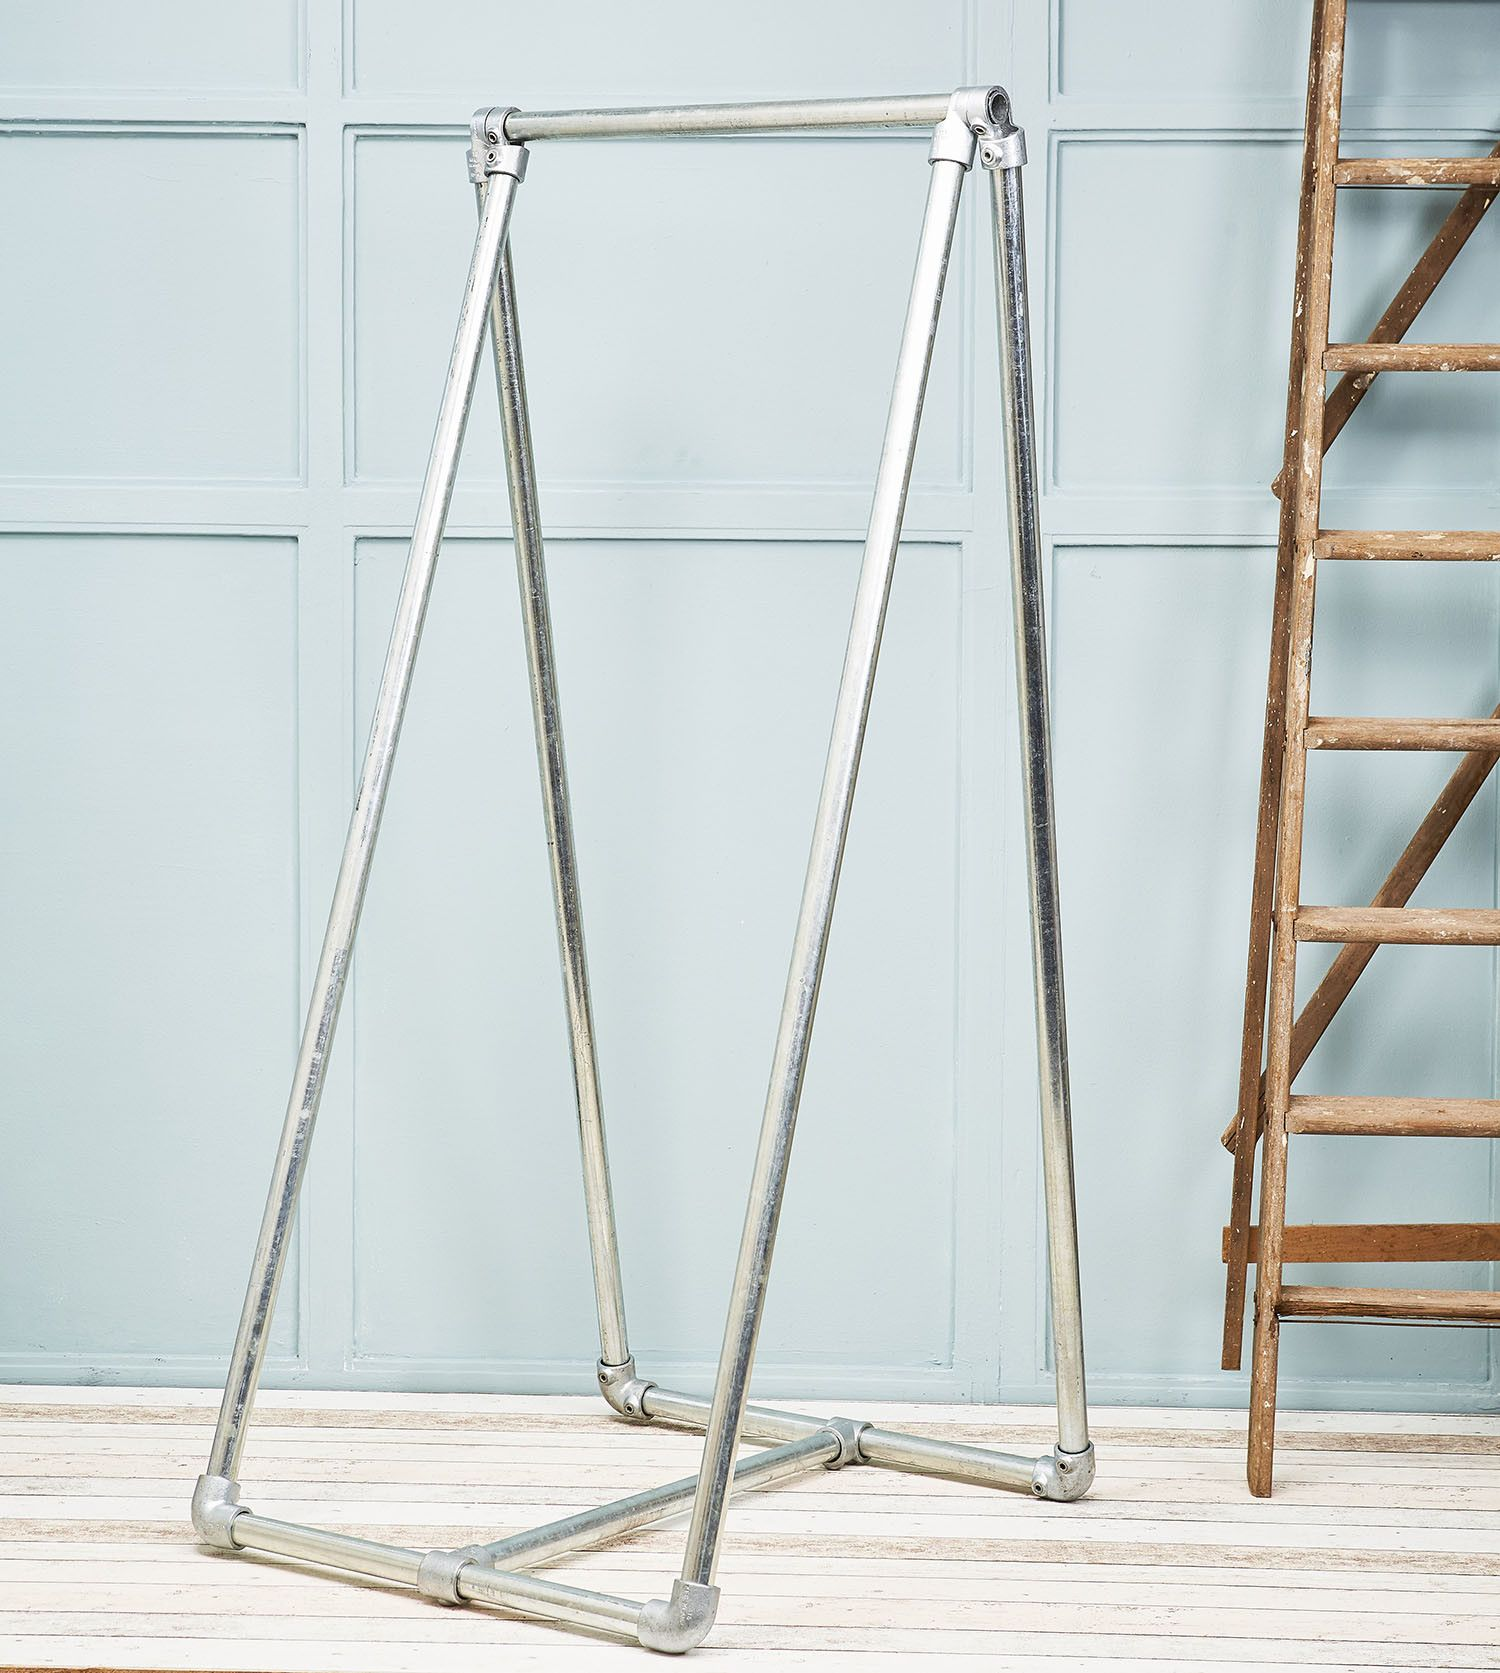 Free Standing Clothing Rail - A-Frame - Kits - Simplified Building ...